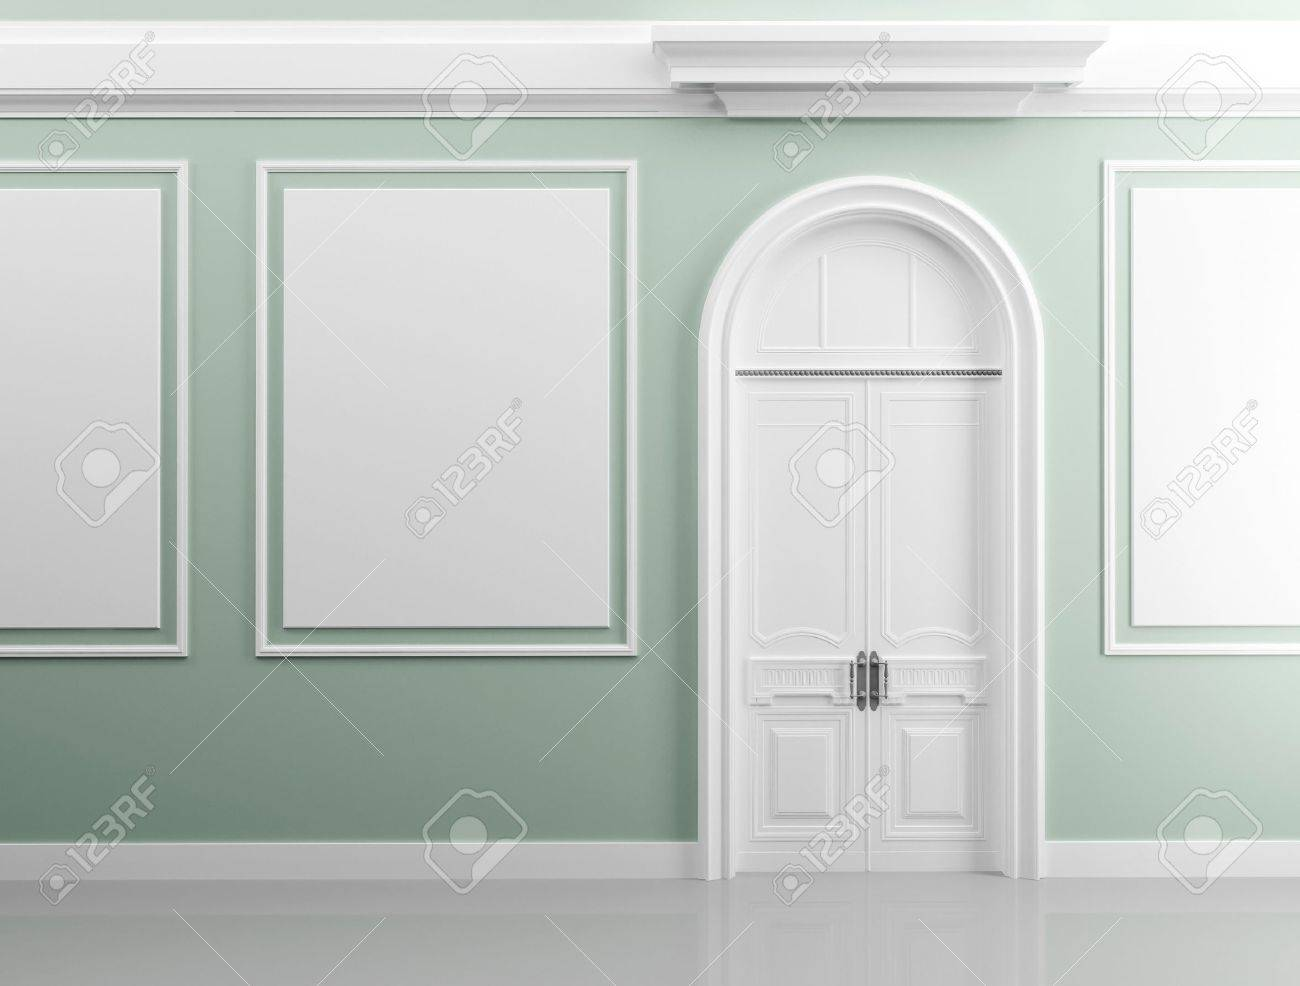 Classical architecture style interior background texture  Light green walls with white design elements and door Stock Photo - 15232680